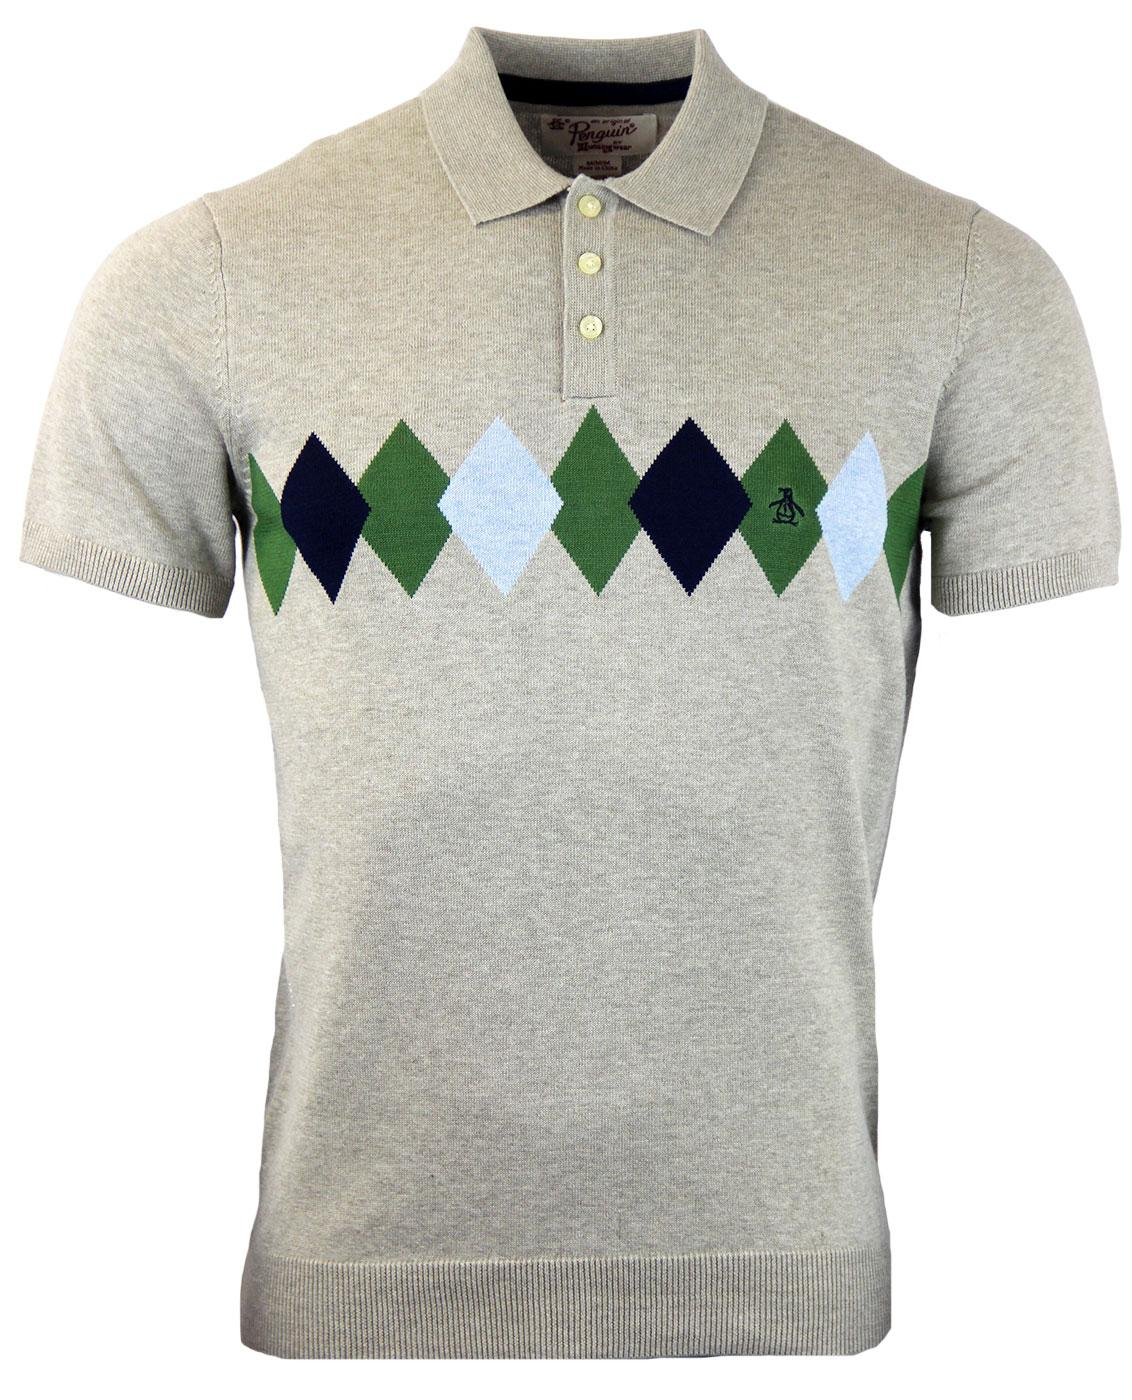 e6acd197b ORIGINAL PENGUIN Retro 60s Mod Knitted Argyle Polo in London Fog